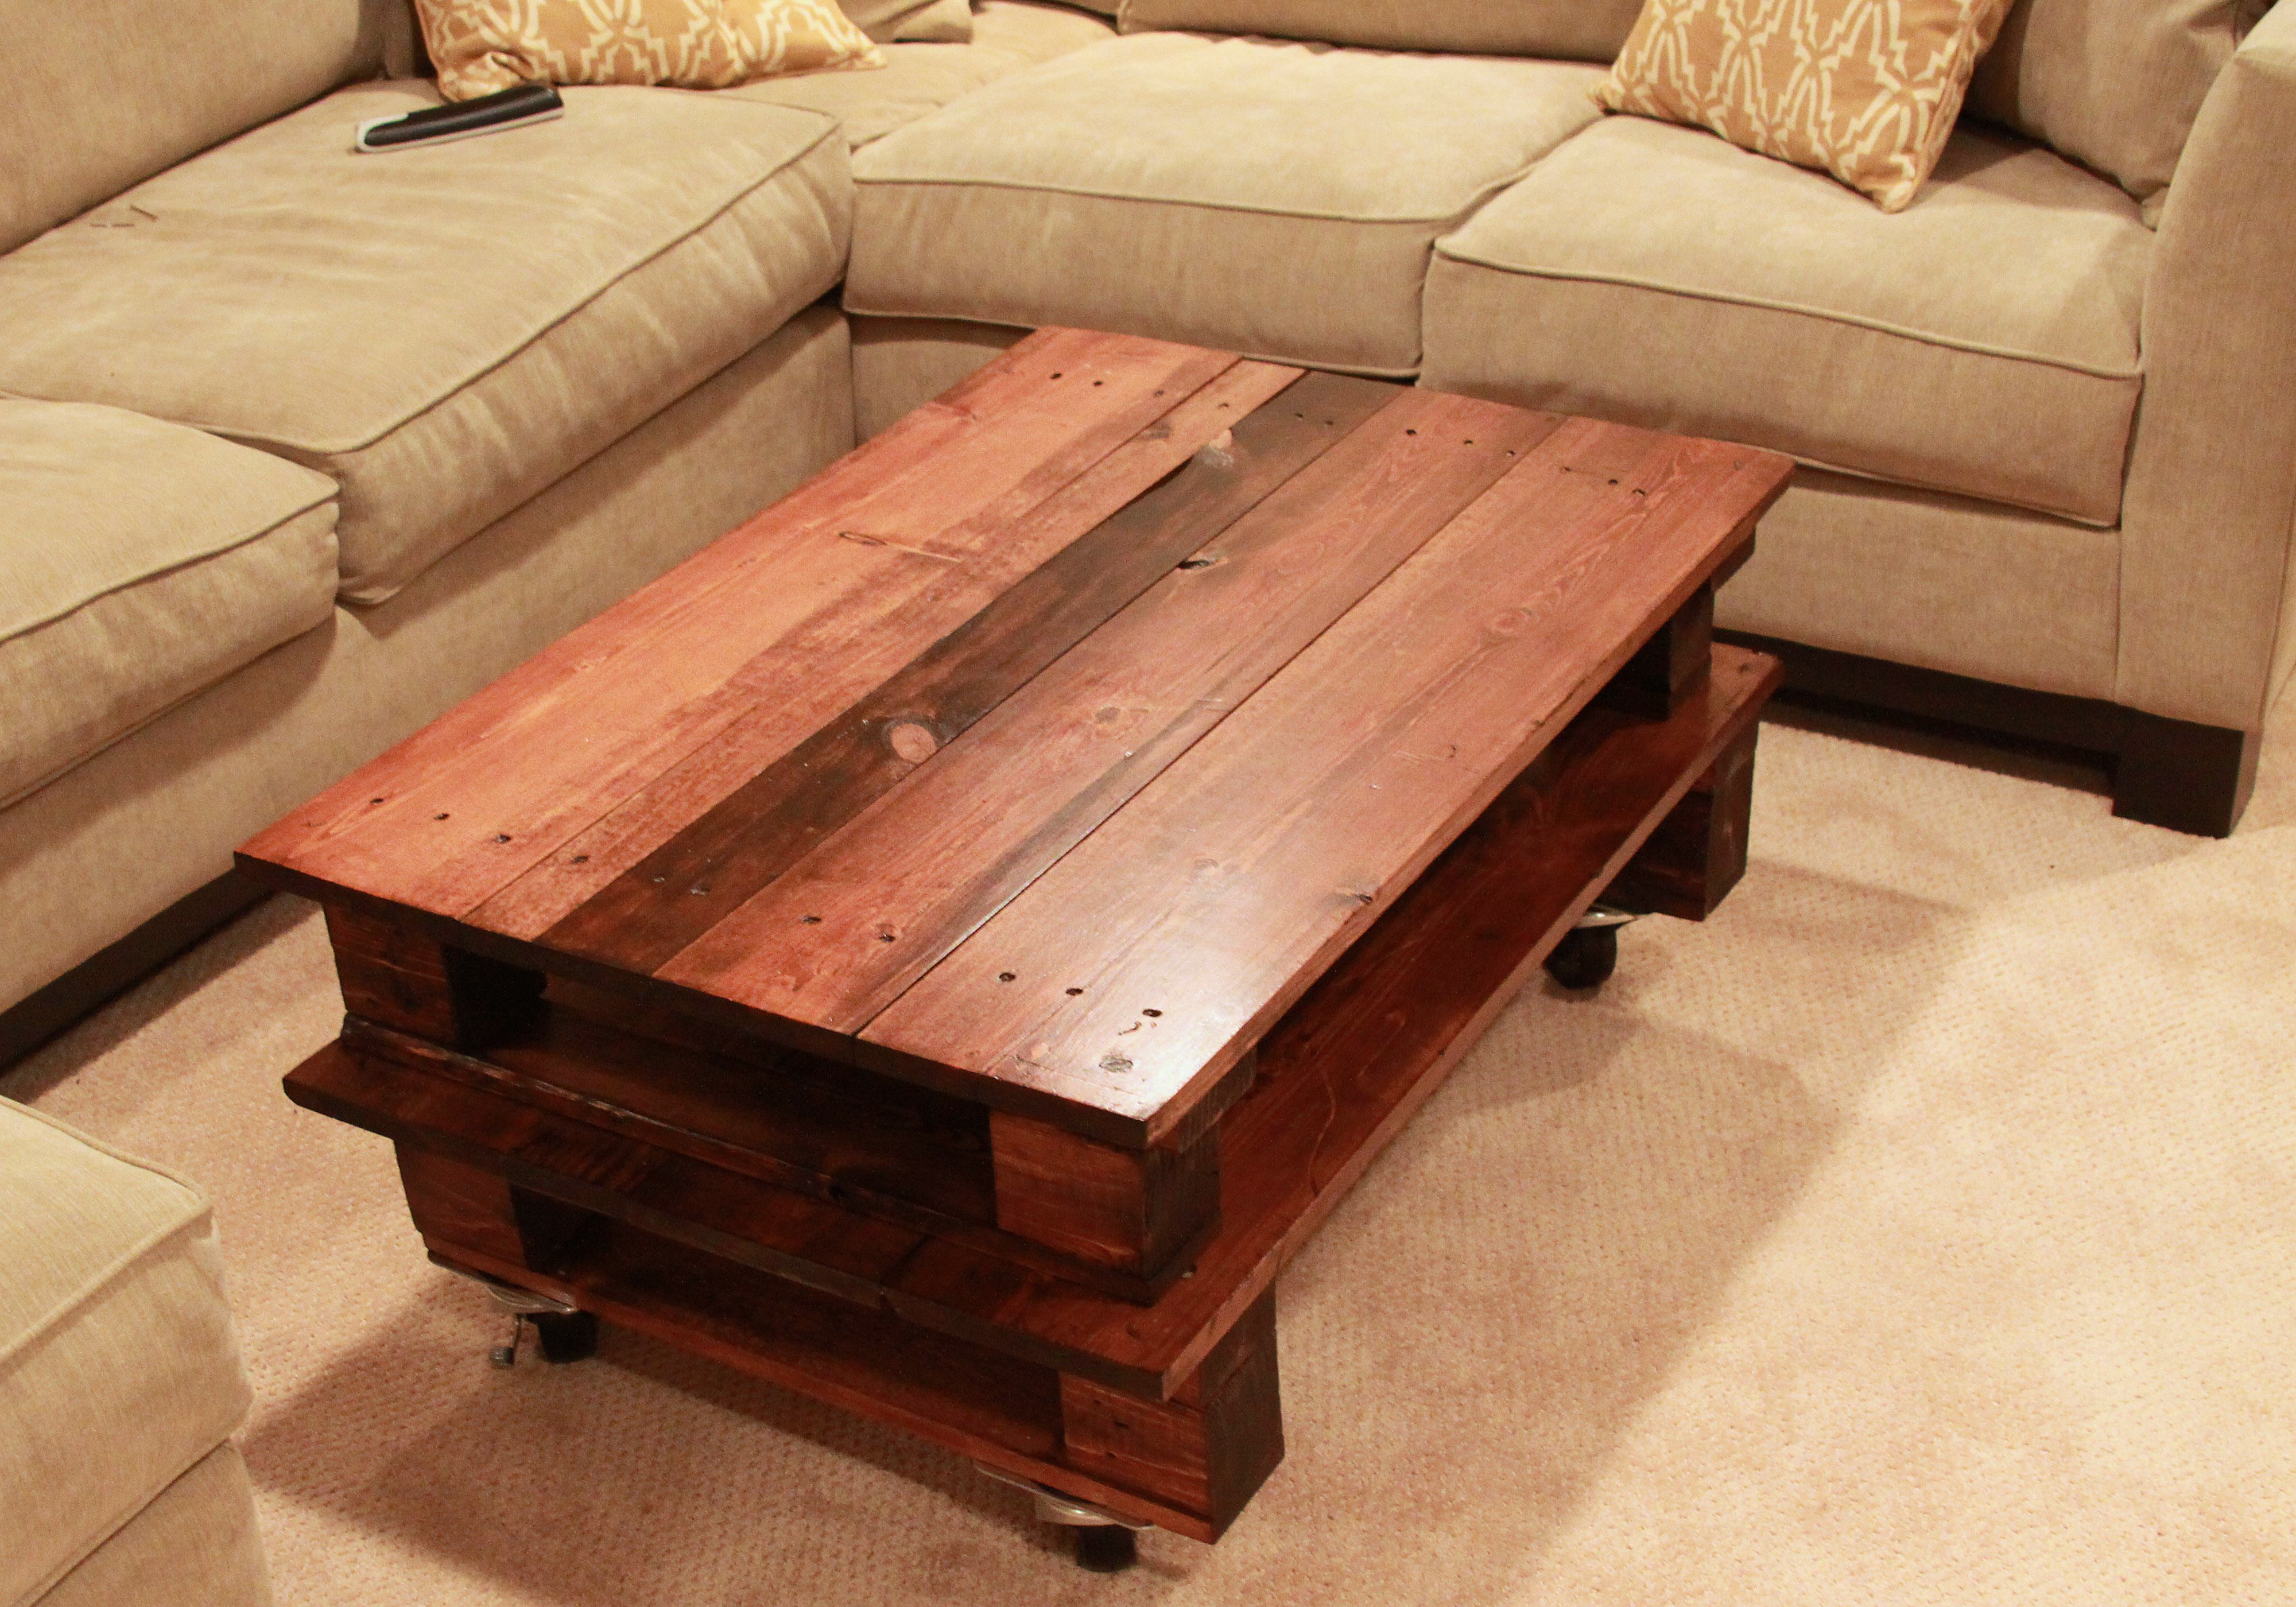 healthy diet breakfast recipes: DIY Pallet Coffee Table